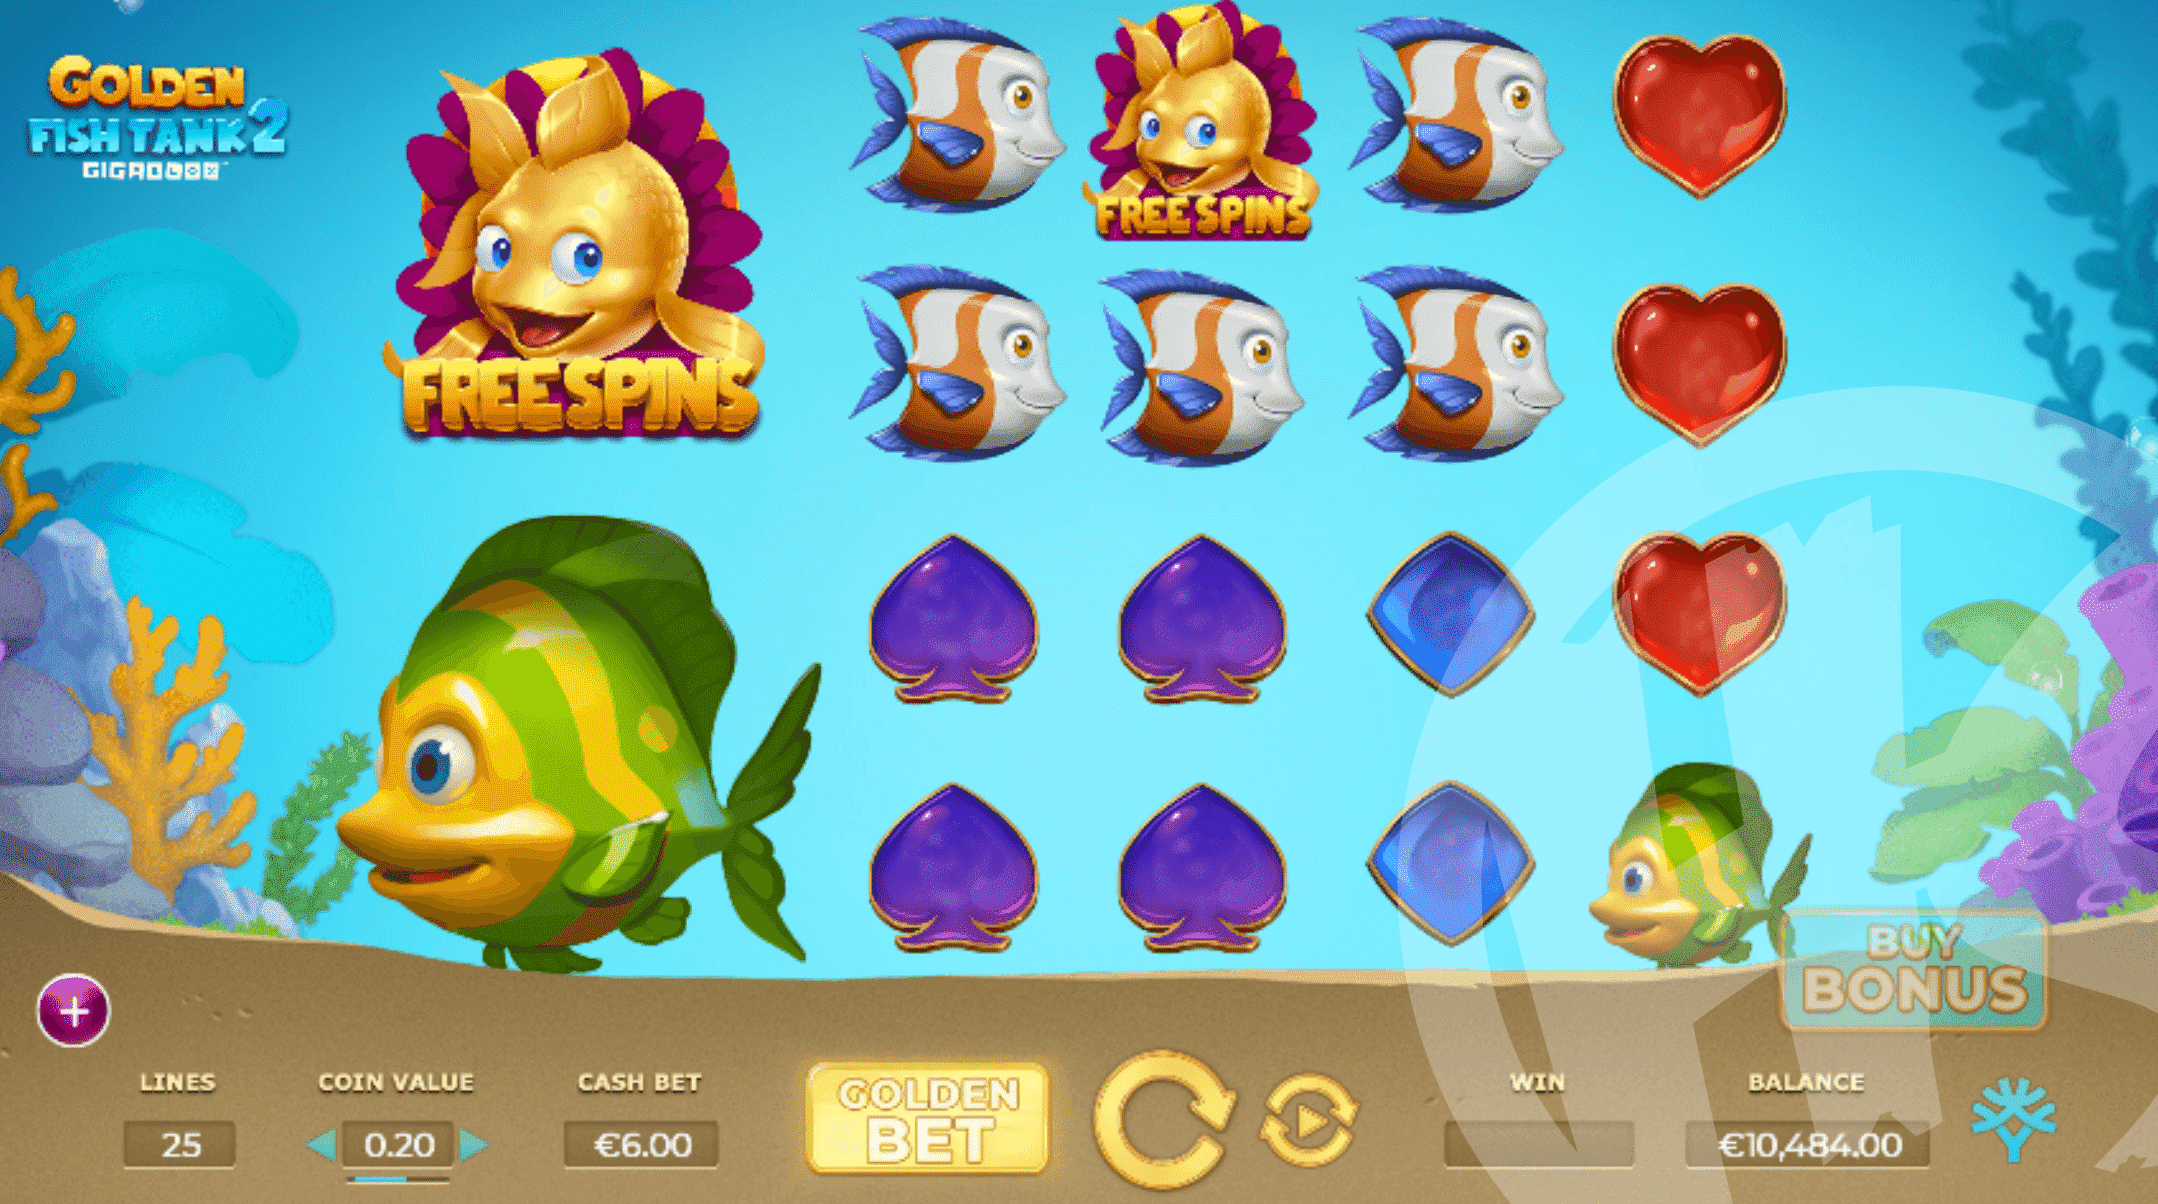 5 or More Scatters Trigger Free Spins